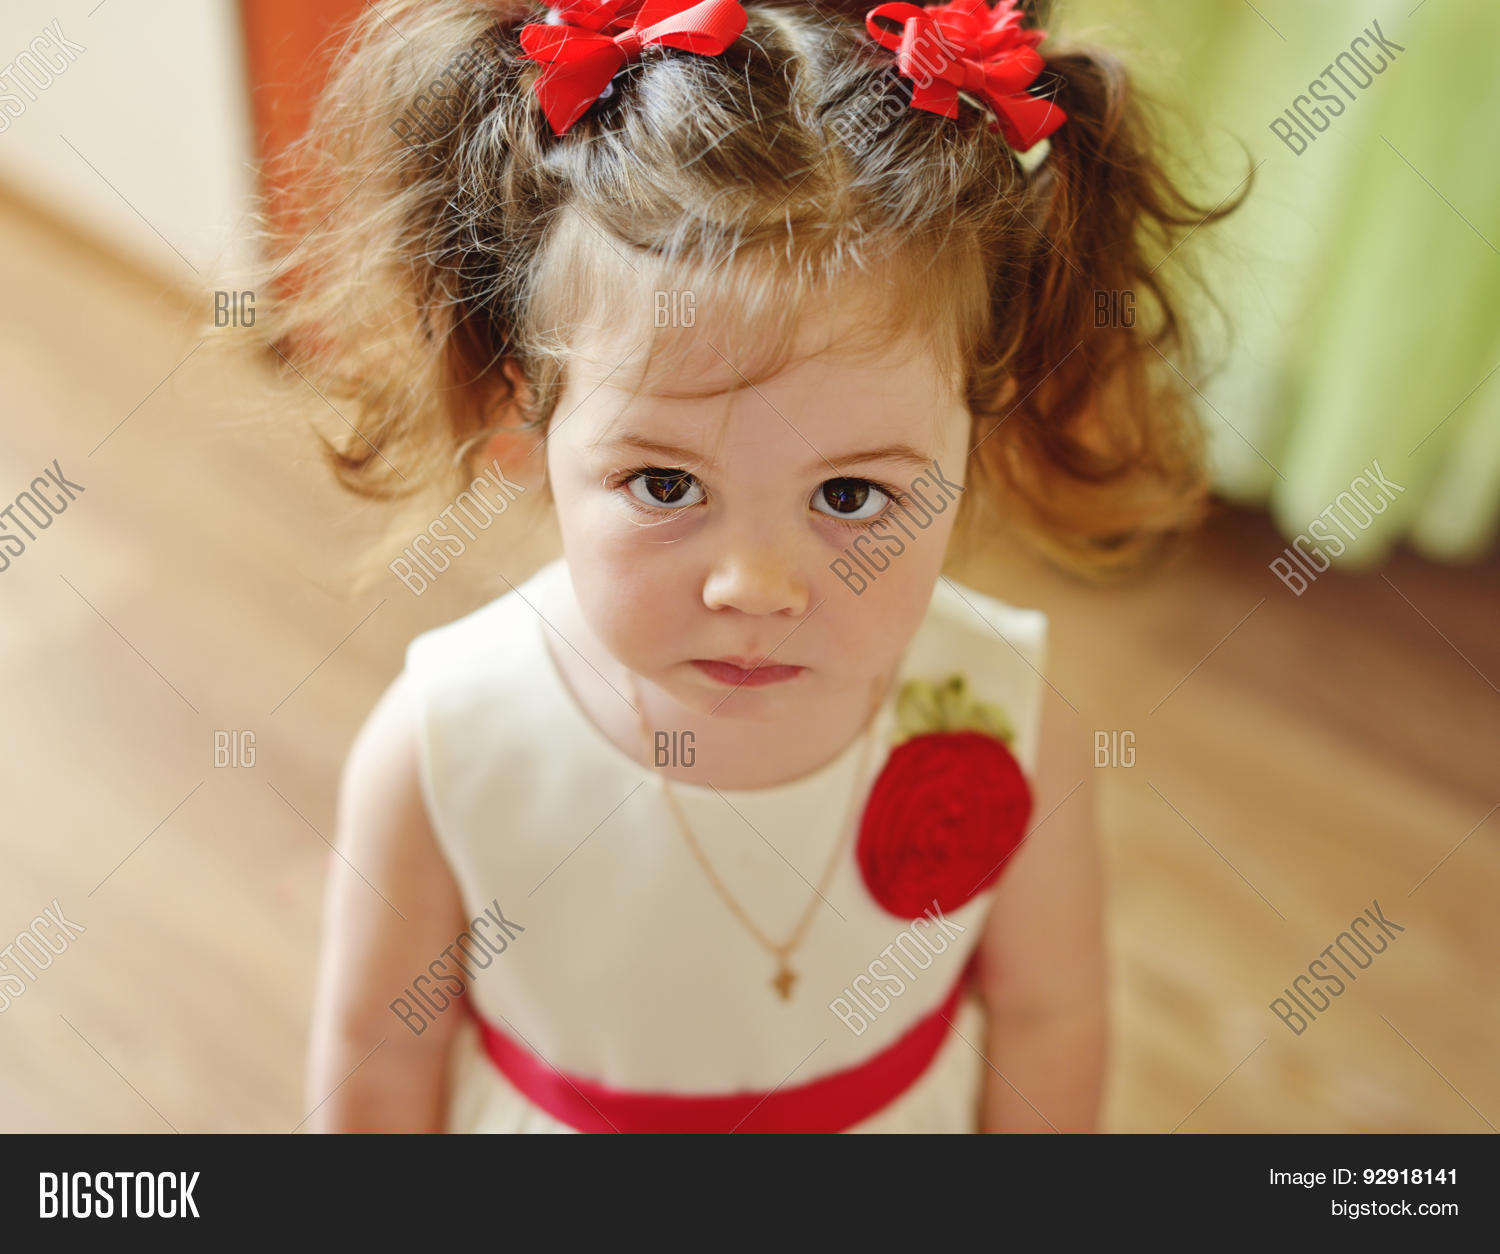 2,amazed,angel,astonishment,baby,background,big,brown,brunette,cheek,cheerful,child,childhood,curly,cute,daughter,dress,enjoying,eye,face,fashion,fun,funny,girl,glad,hair,happiness,happy,hazel,healthy,indoors,innocence,joyful,kid,little,long,looking,merry,pleased,pony,portrait,serious,smile,surprised,sweet,tail,tenderness,toddler,well-dressed,years